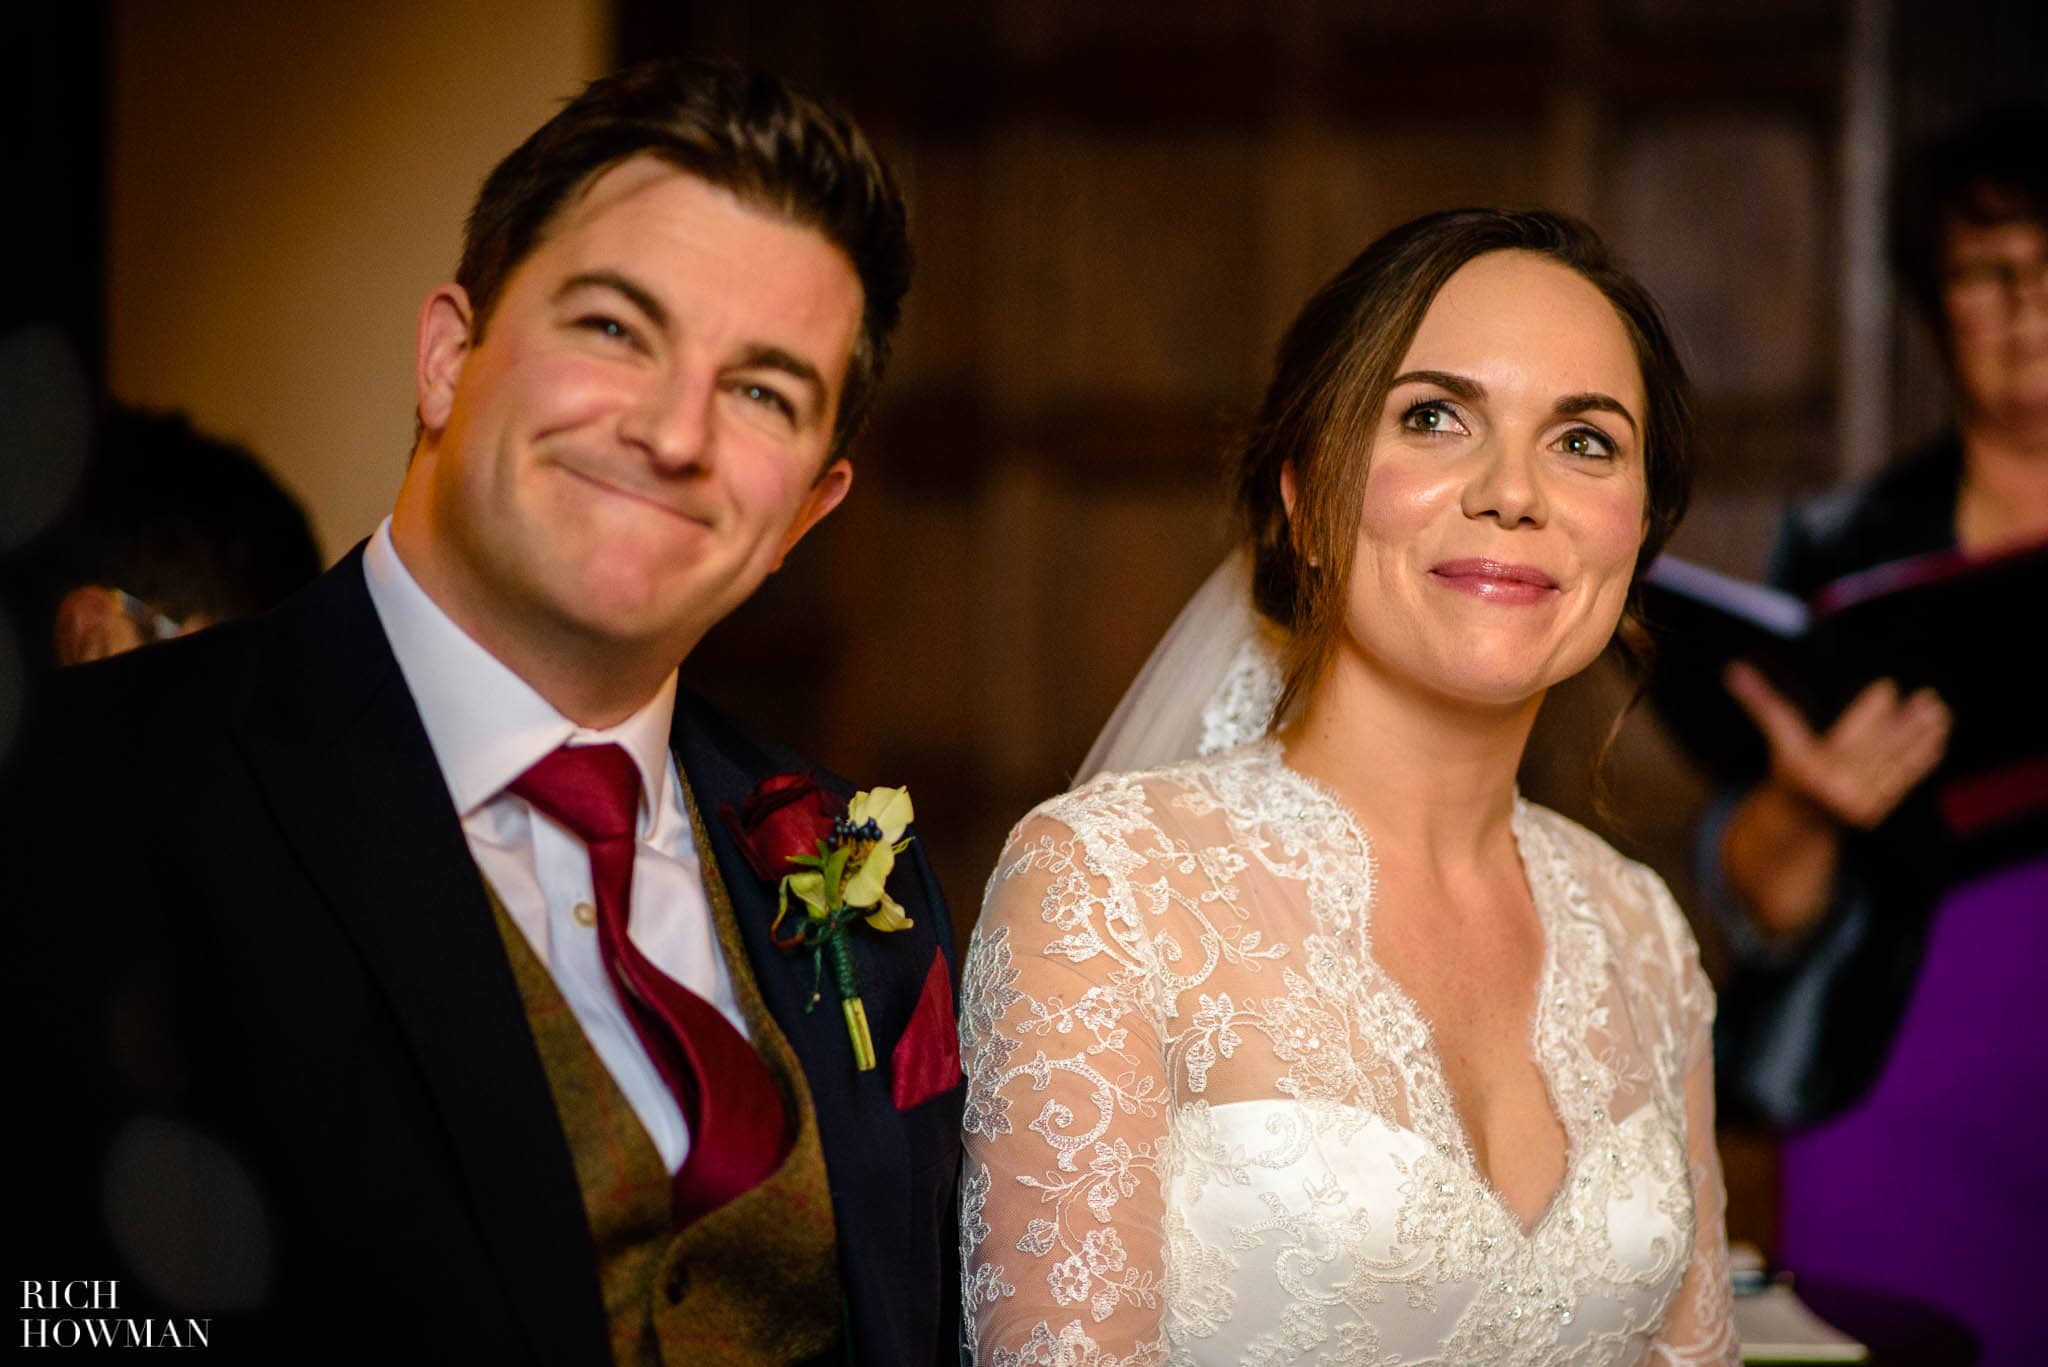 Bride and Groom smiling at the readings during their wedding ceremony at Huntsham Court